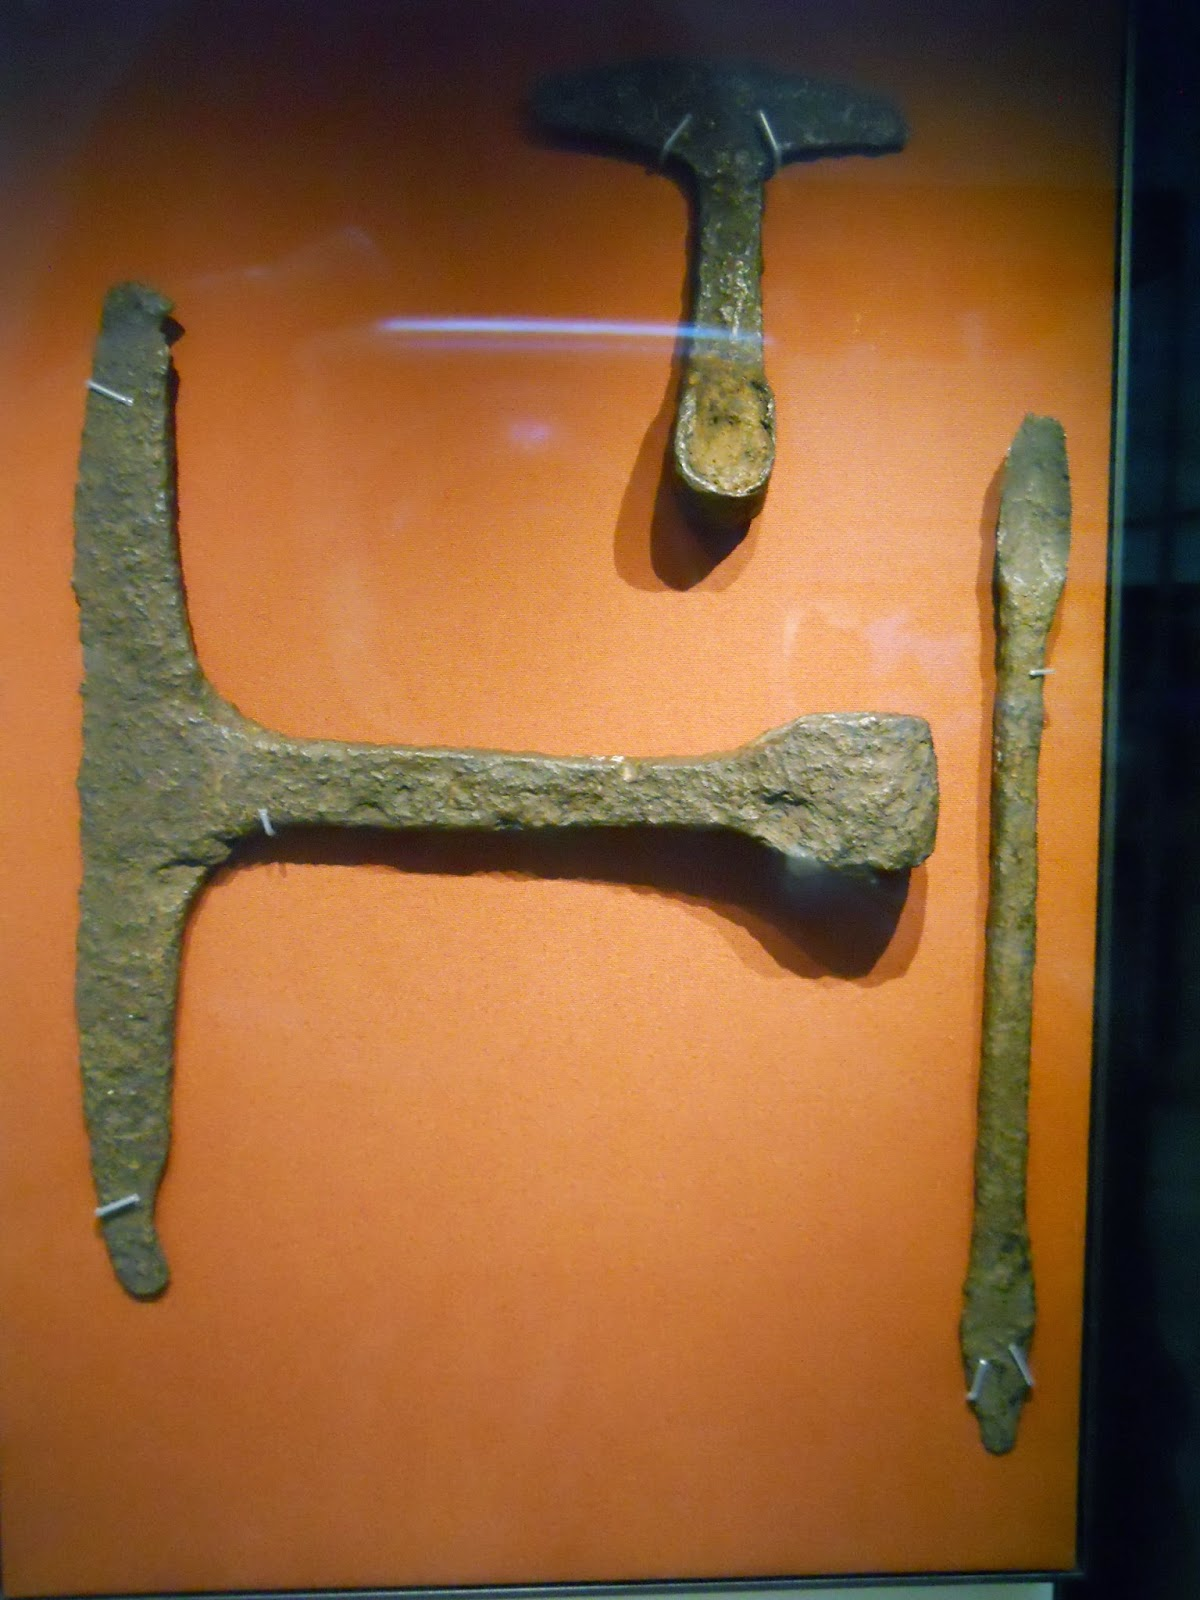 egyptian adze. these anglo-saxon woodworking tools were found at hurbuck in county durham and date to around 1,200 - 1,000 years ago. the curved adze top would be egyptian a